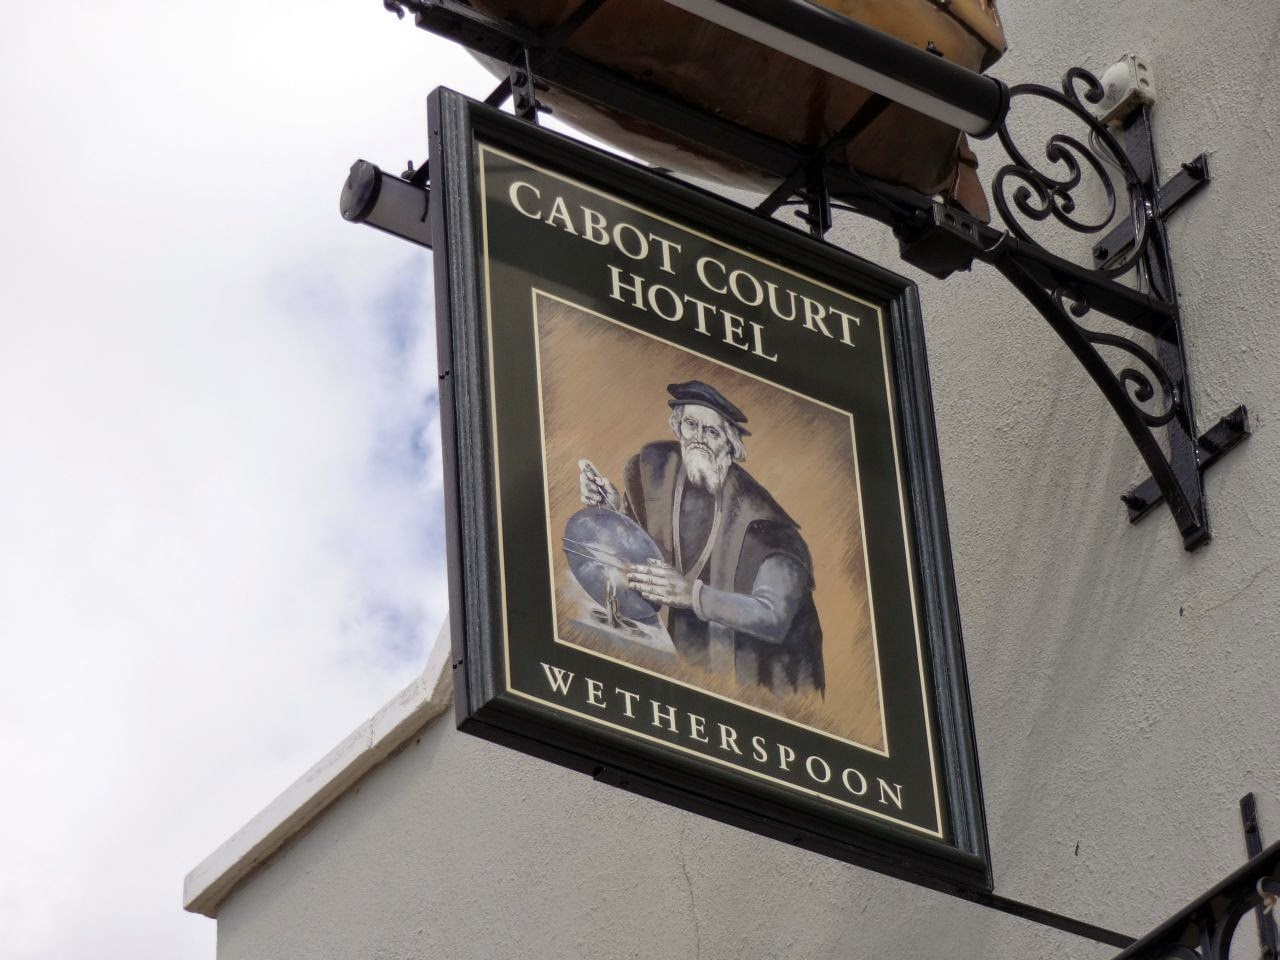 The Cabot Court Hotel